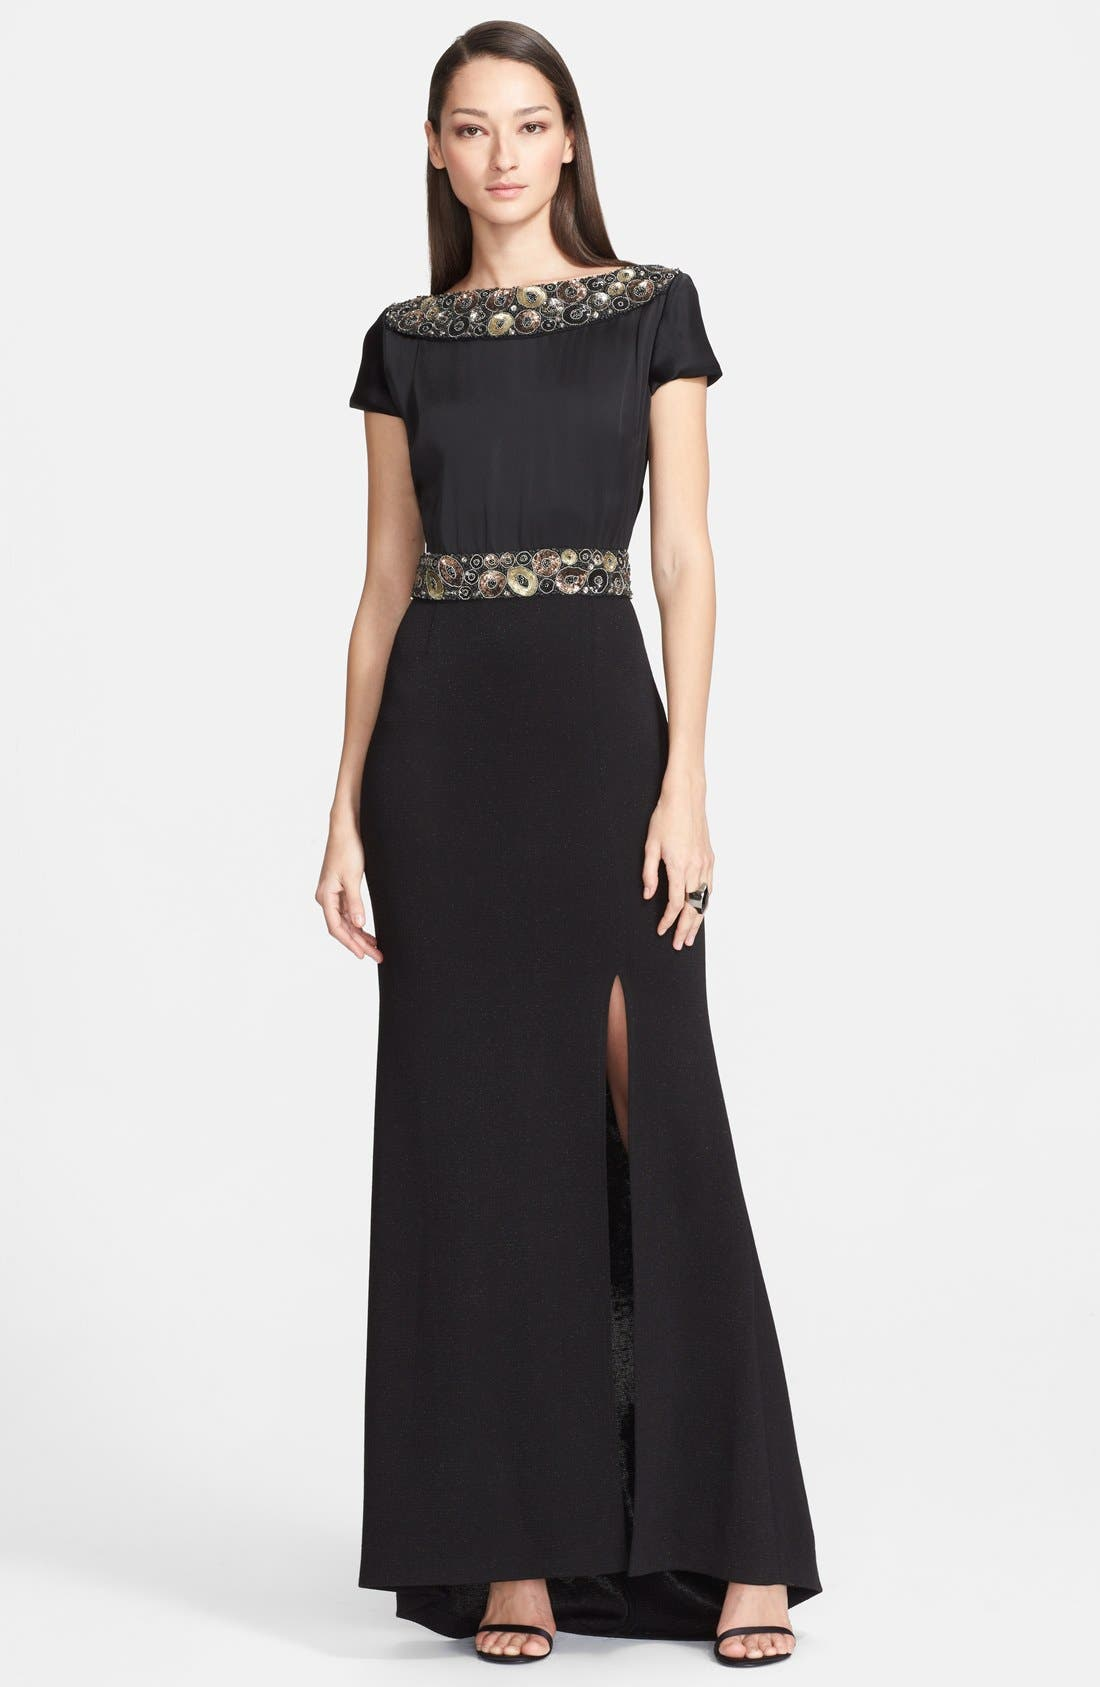 Alternate Image 1 Selected - St. John Collection Embellished Liquid Crepe & Shimmer Milano Knit Gown